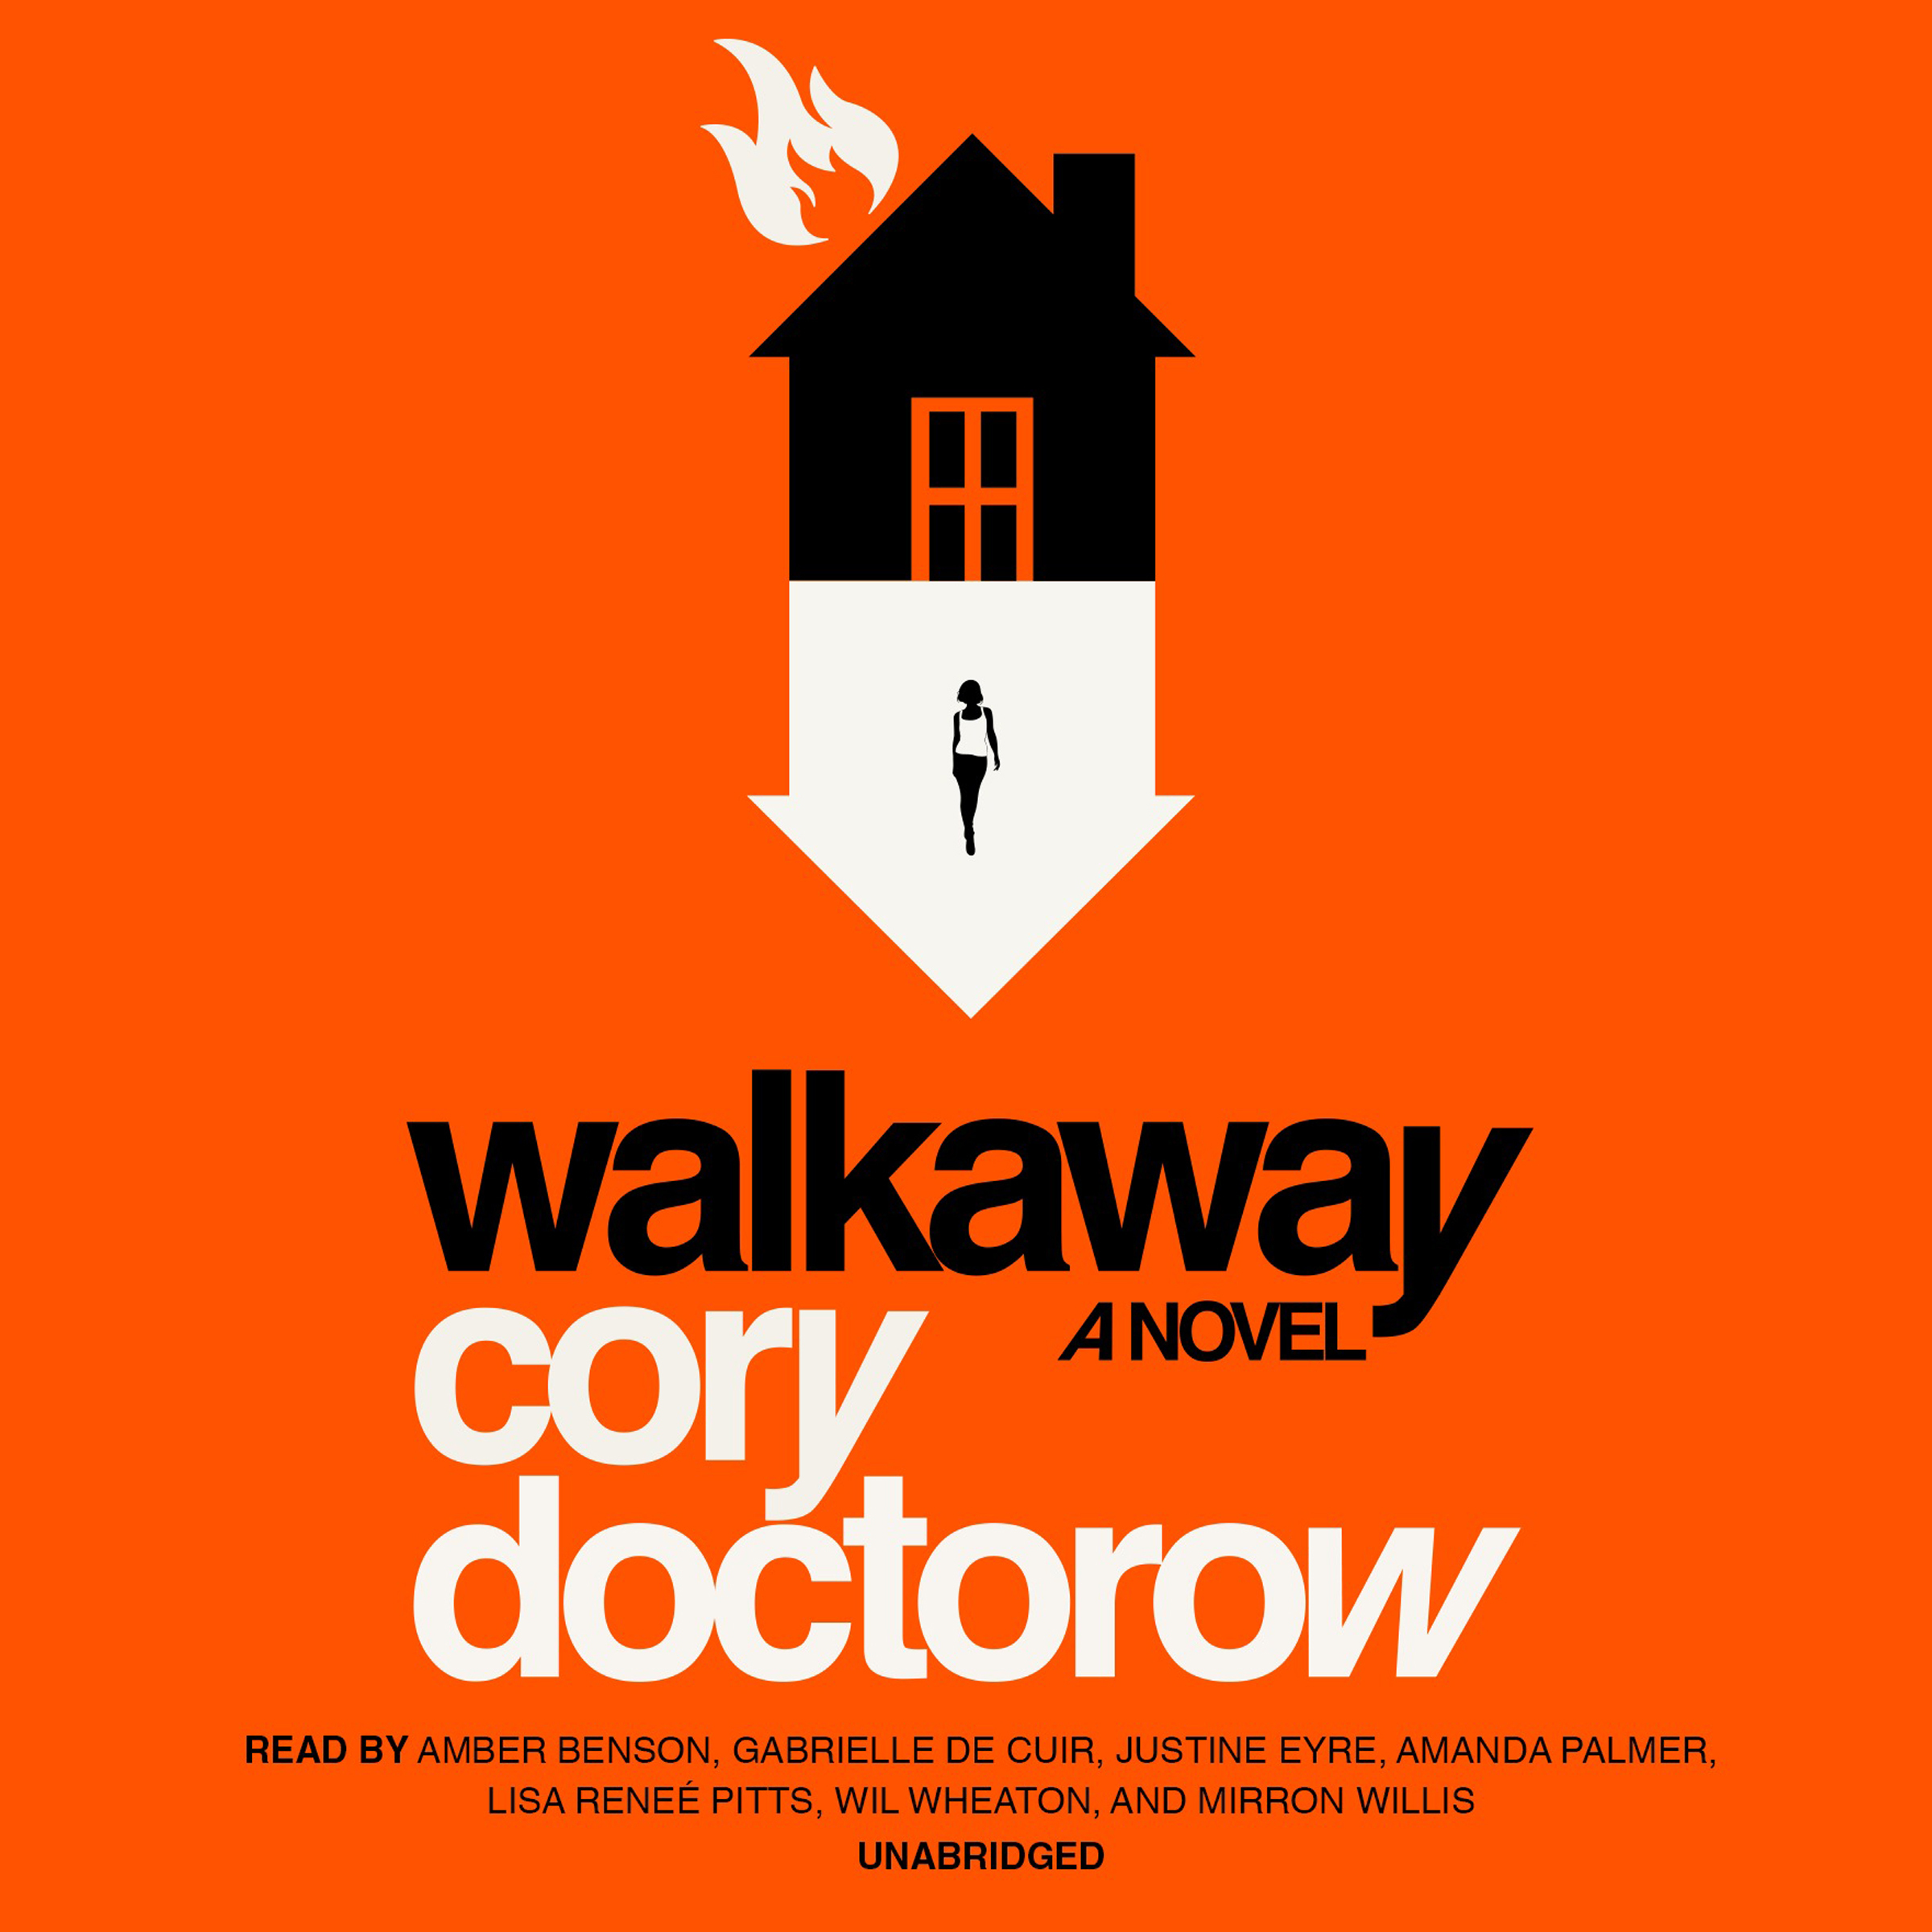 Download Walkaway Audiobook by Cory Doctorow for just 595